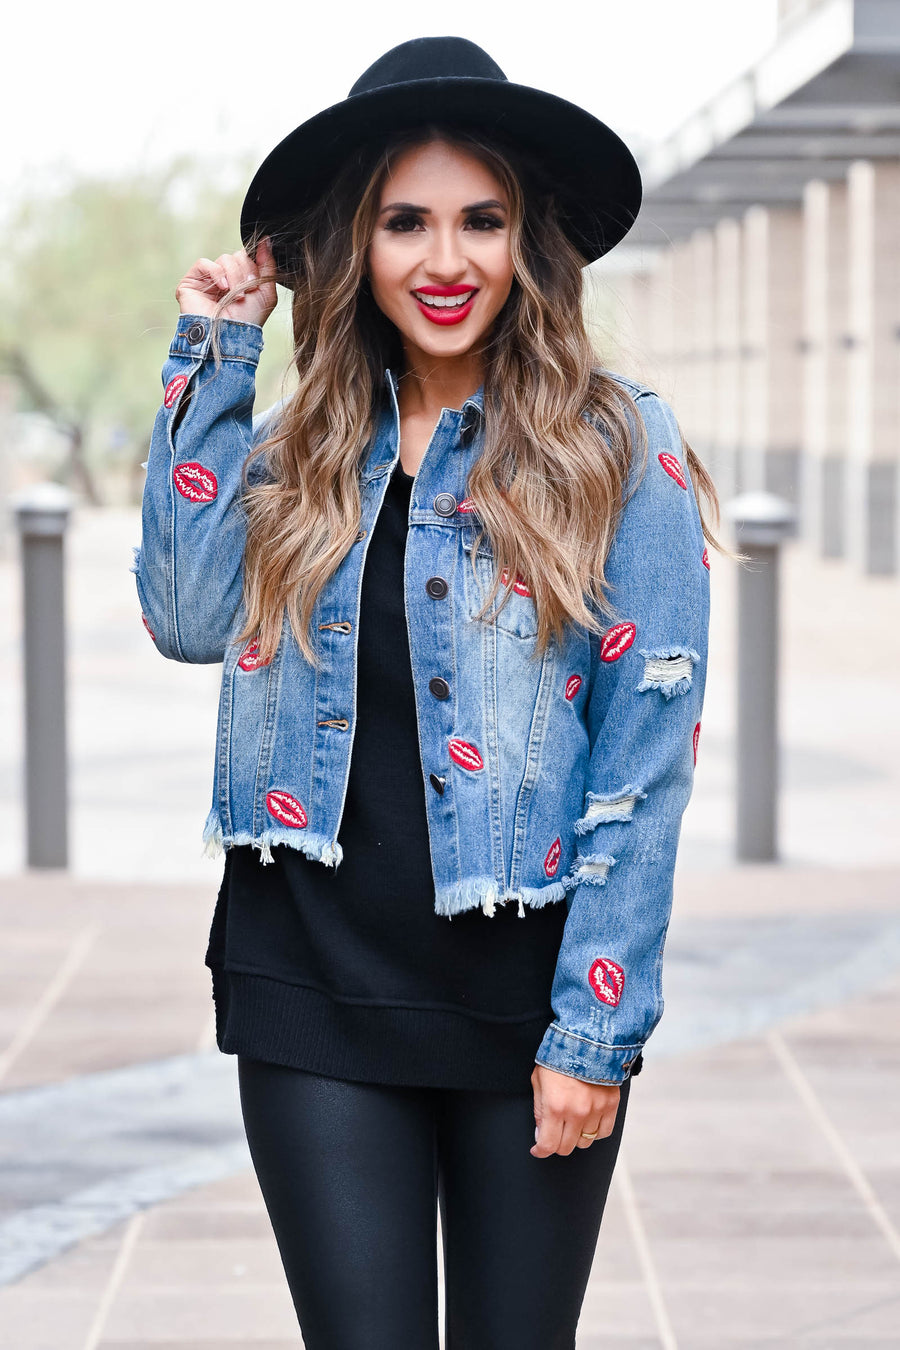 Pucker Up Denim Jacket - Medium Wash closet candy women's trendy raw hem denim jacket with embroidered lips front